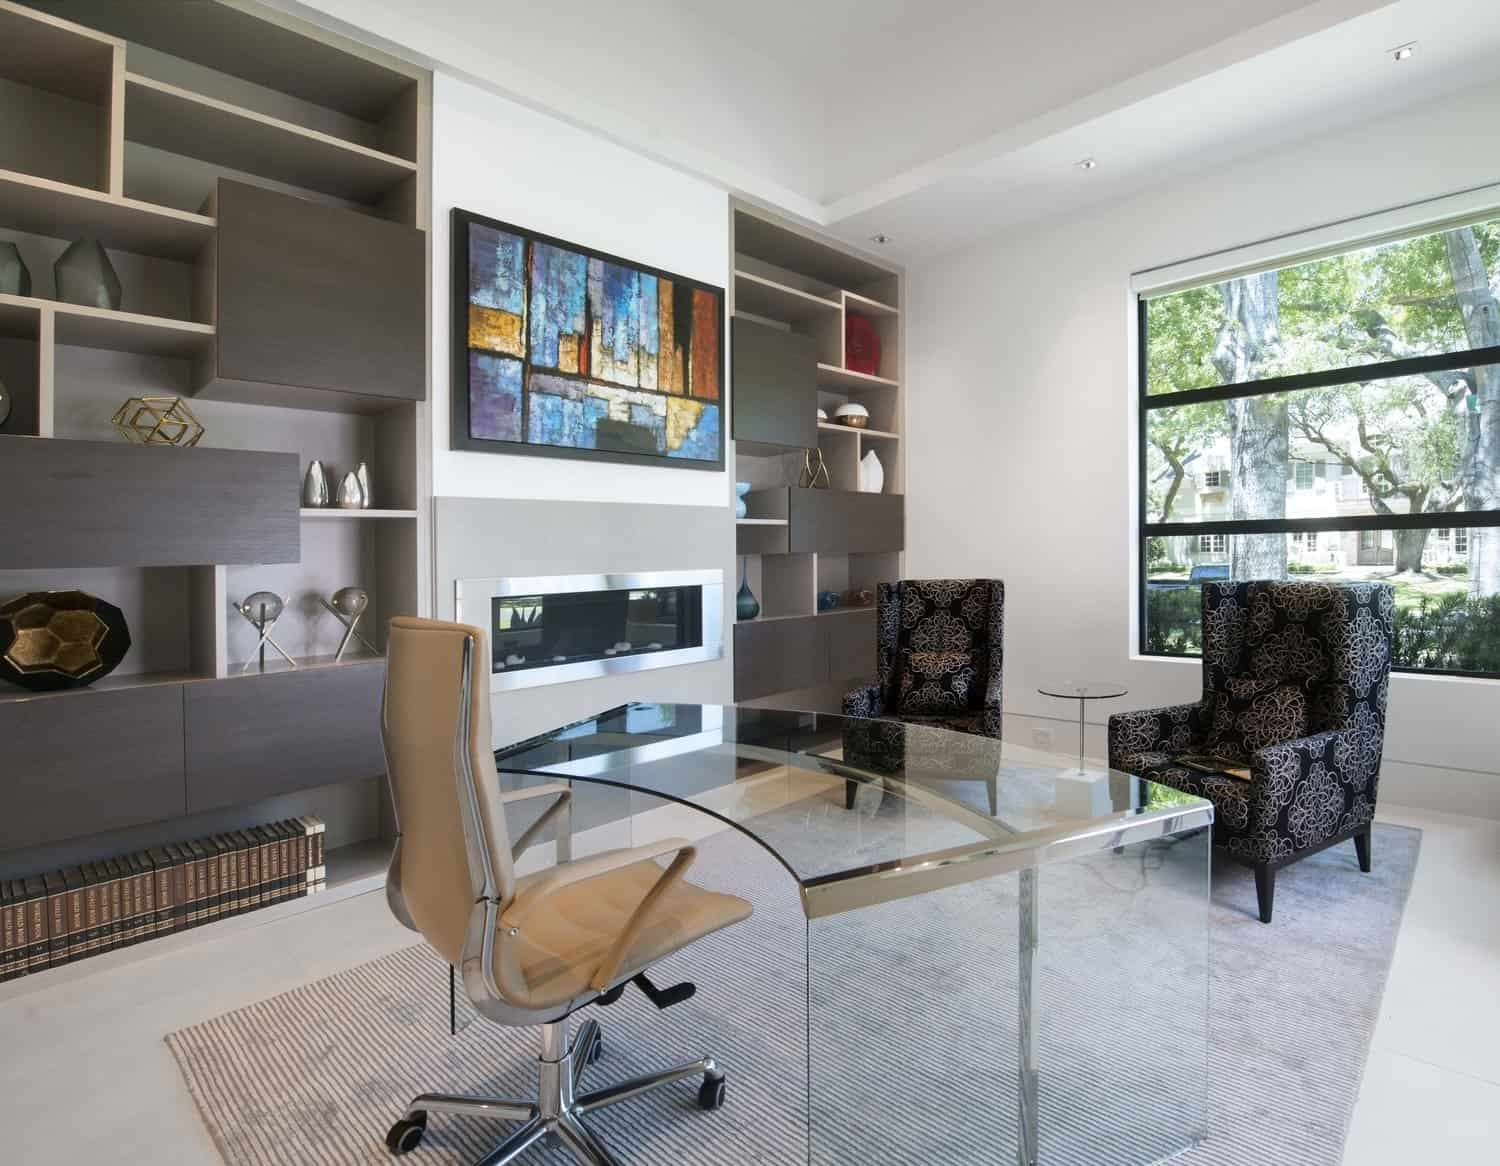 eggersmann display shelving and storage drawers add interest and function to the office of this contemporary home in houston